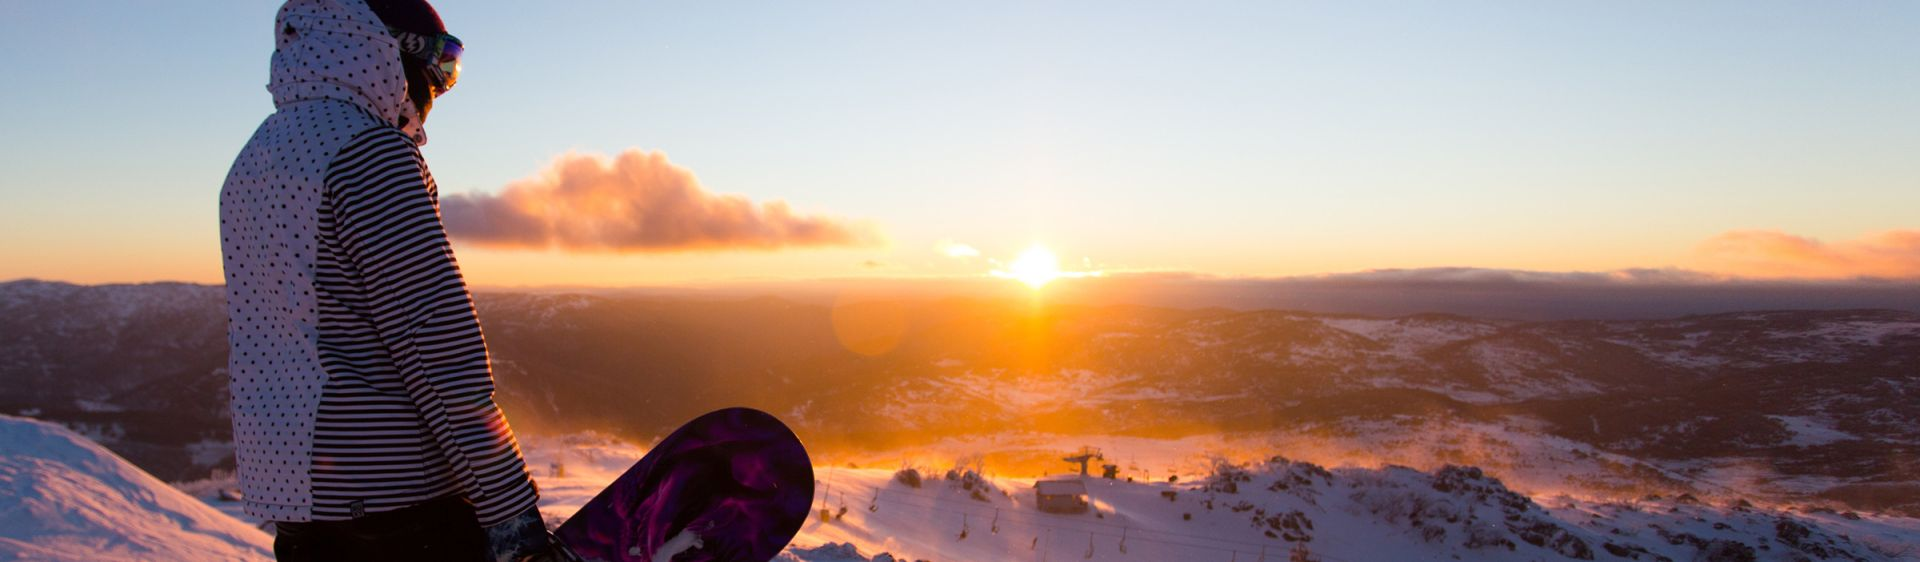 Sunrise in Blue Cow - Perisher - Snowy Mountains